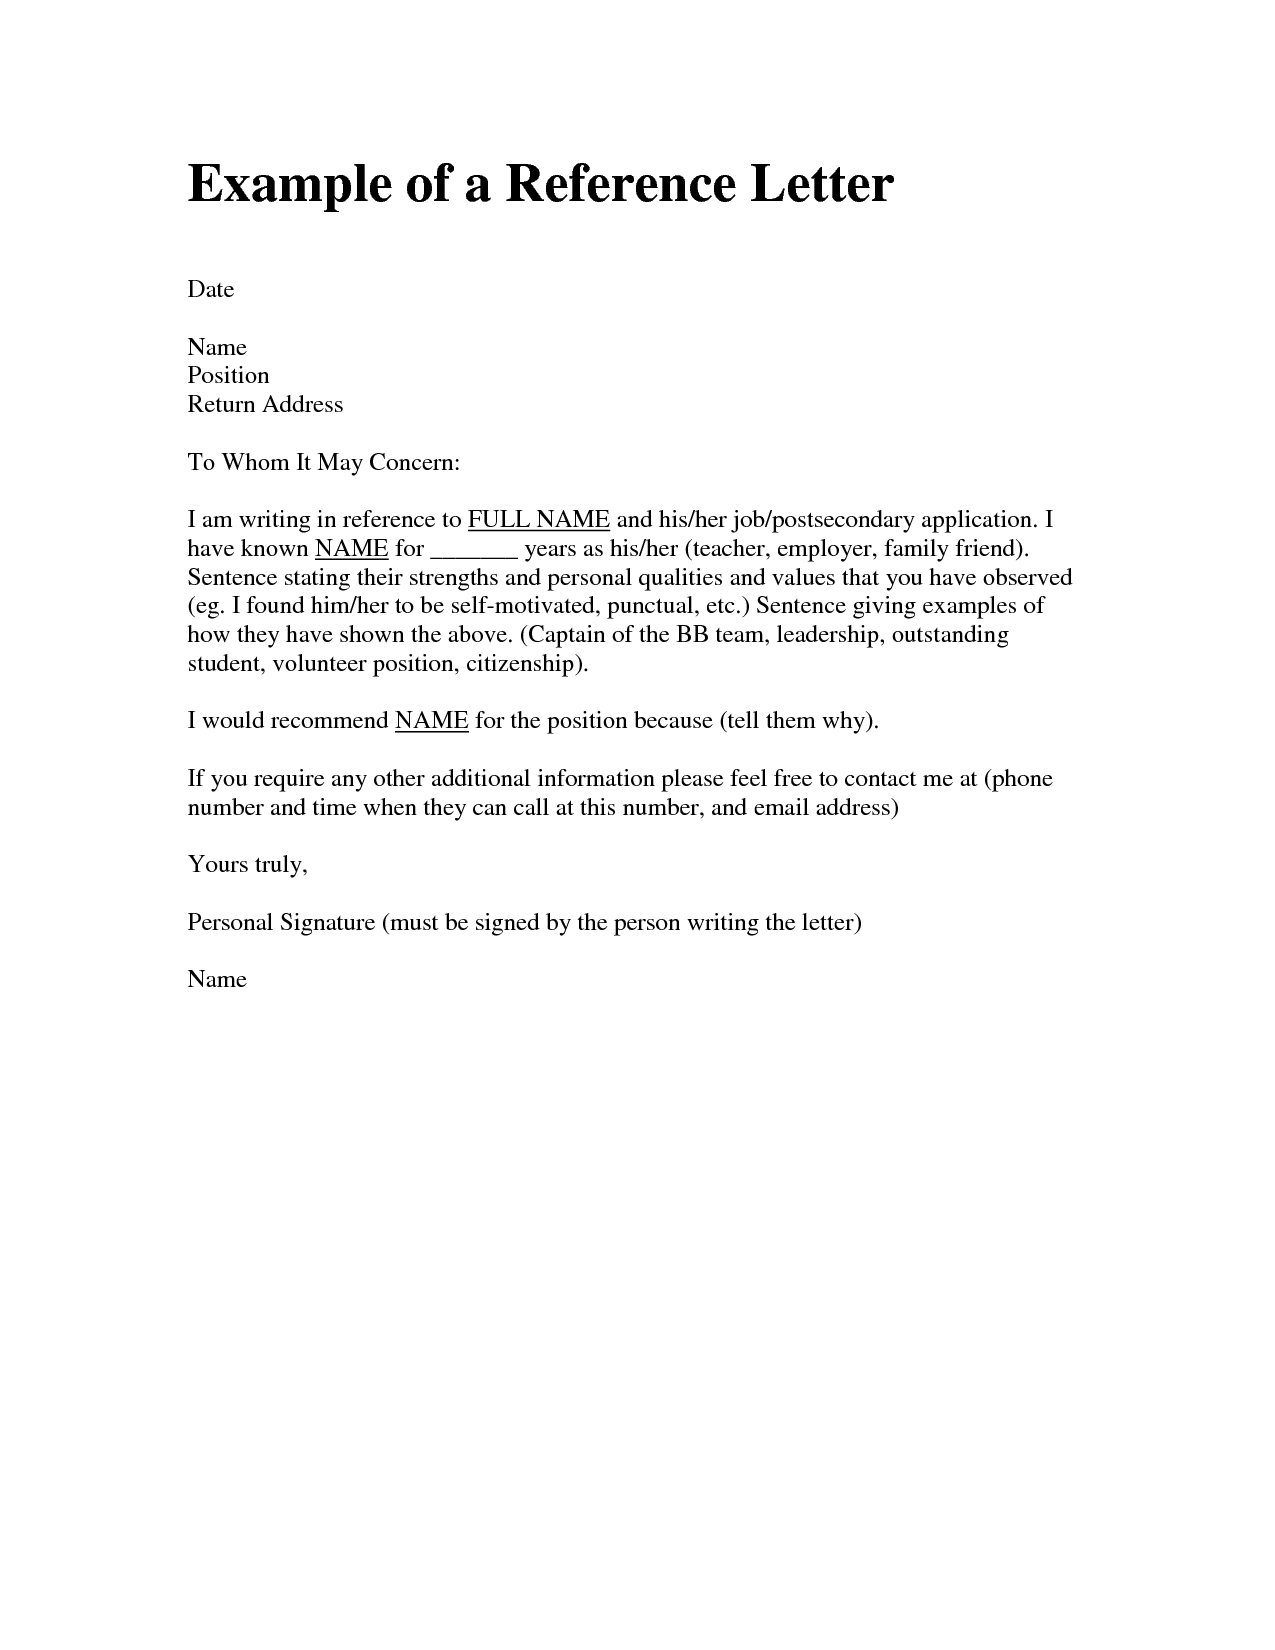 Letter Of Recommendation Template For Friend Letter Art Lonwput R00s4qKO